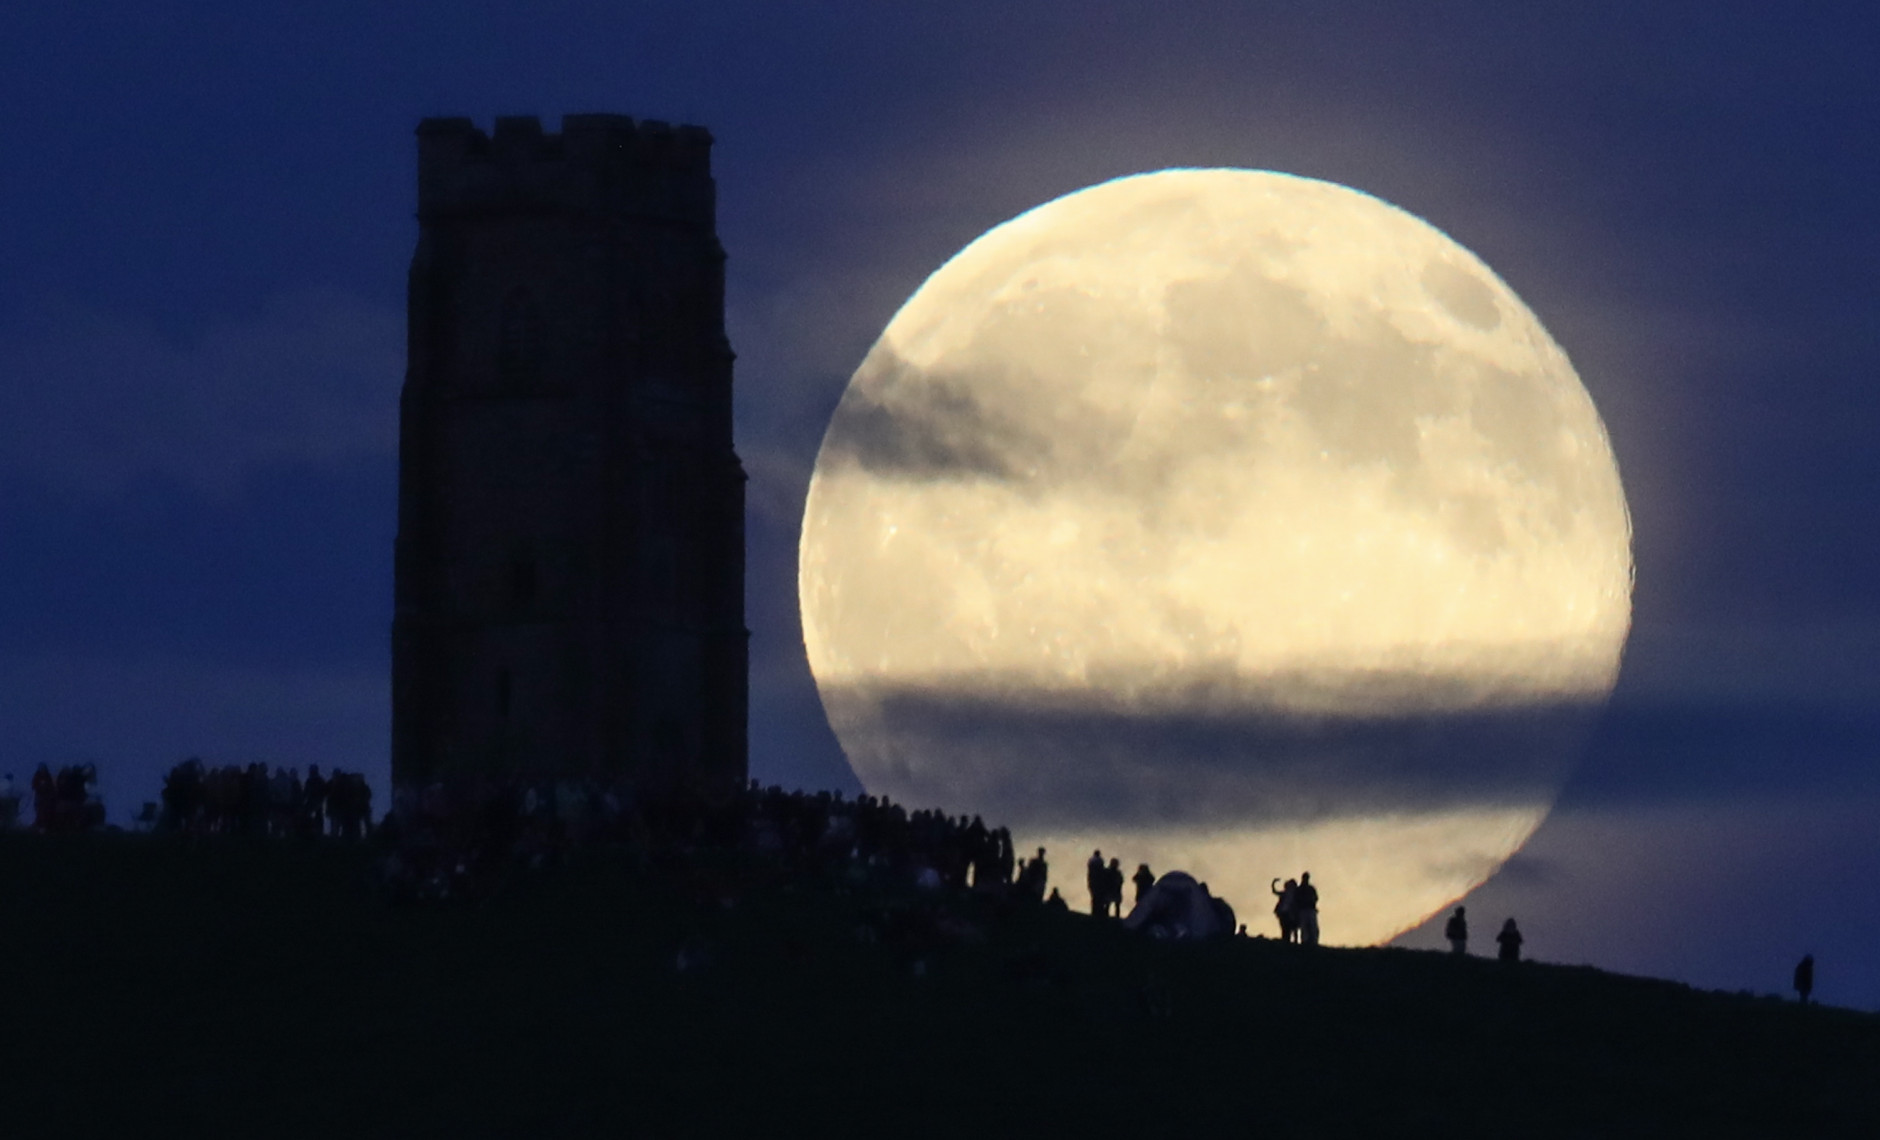 A full moon rises behind Glastonbury Tor as people gather to celebrate the summer solstice on June 20, 2016 in Somerset, England.  (Photo by Matt Cardy/Getty Images)